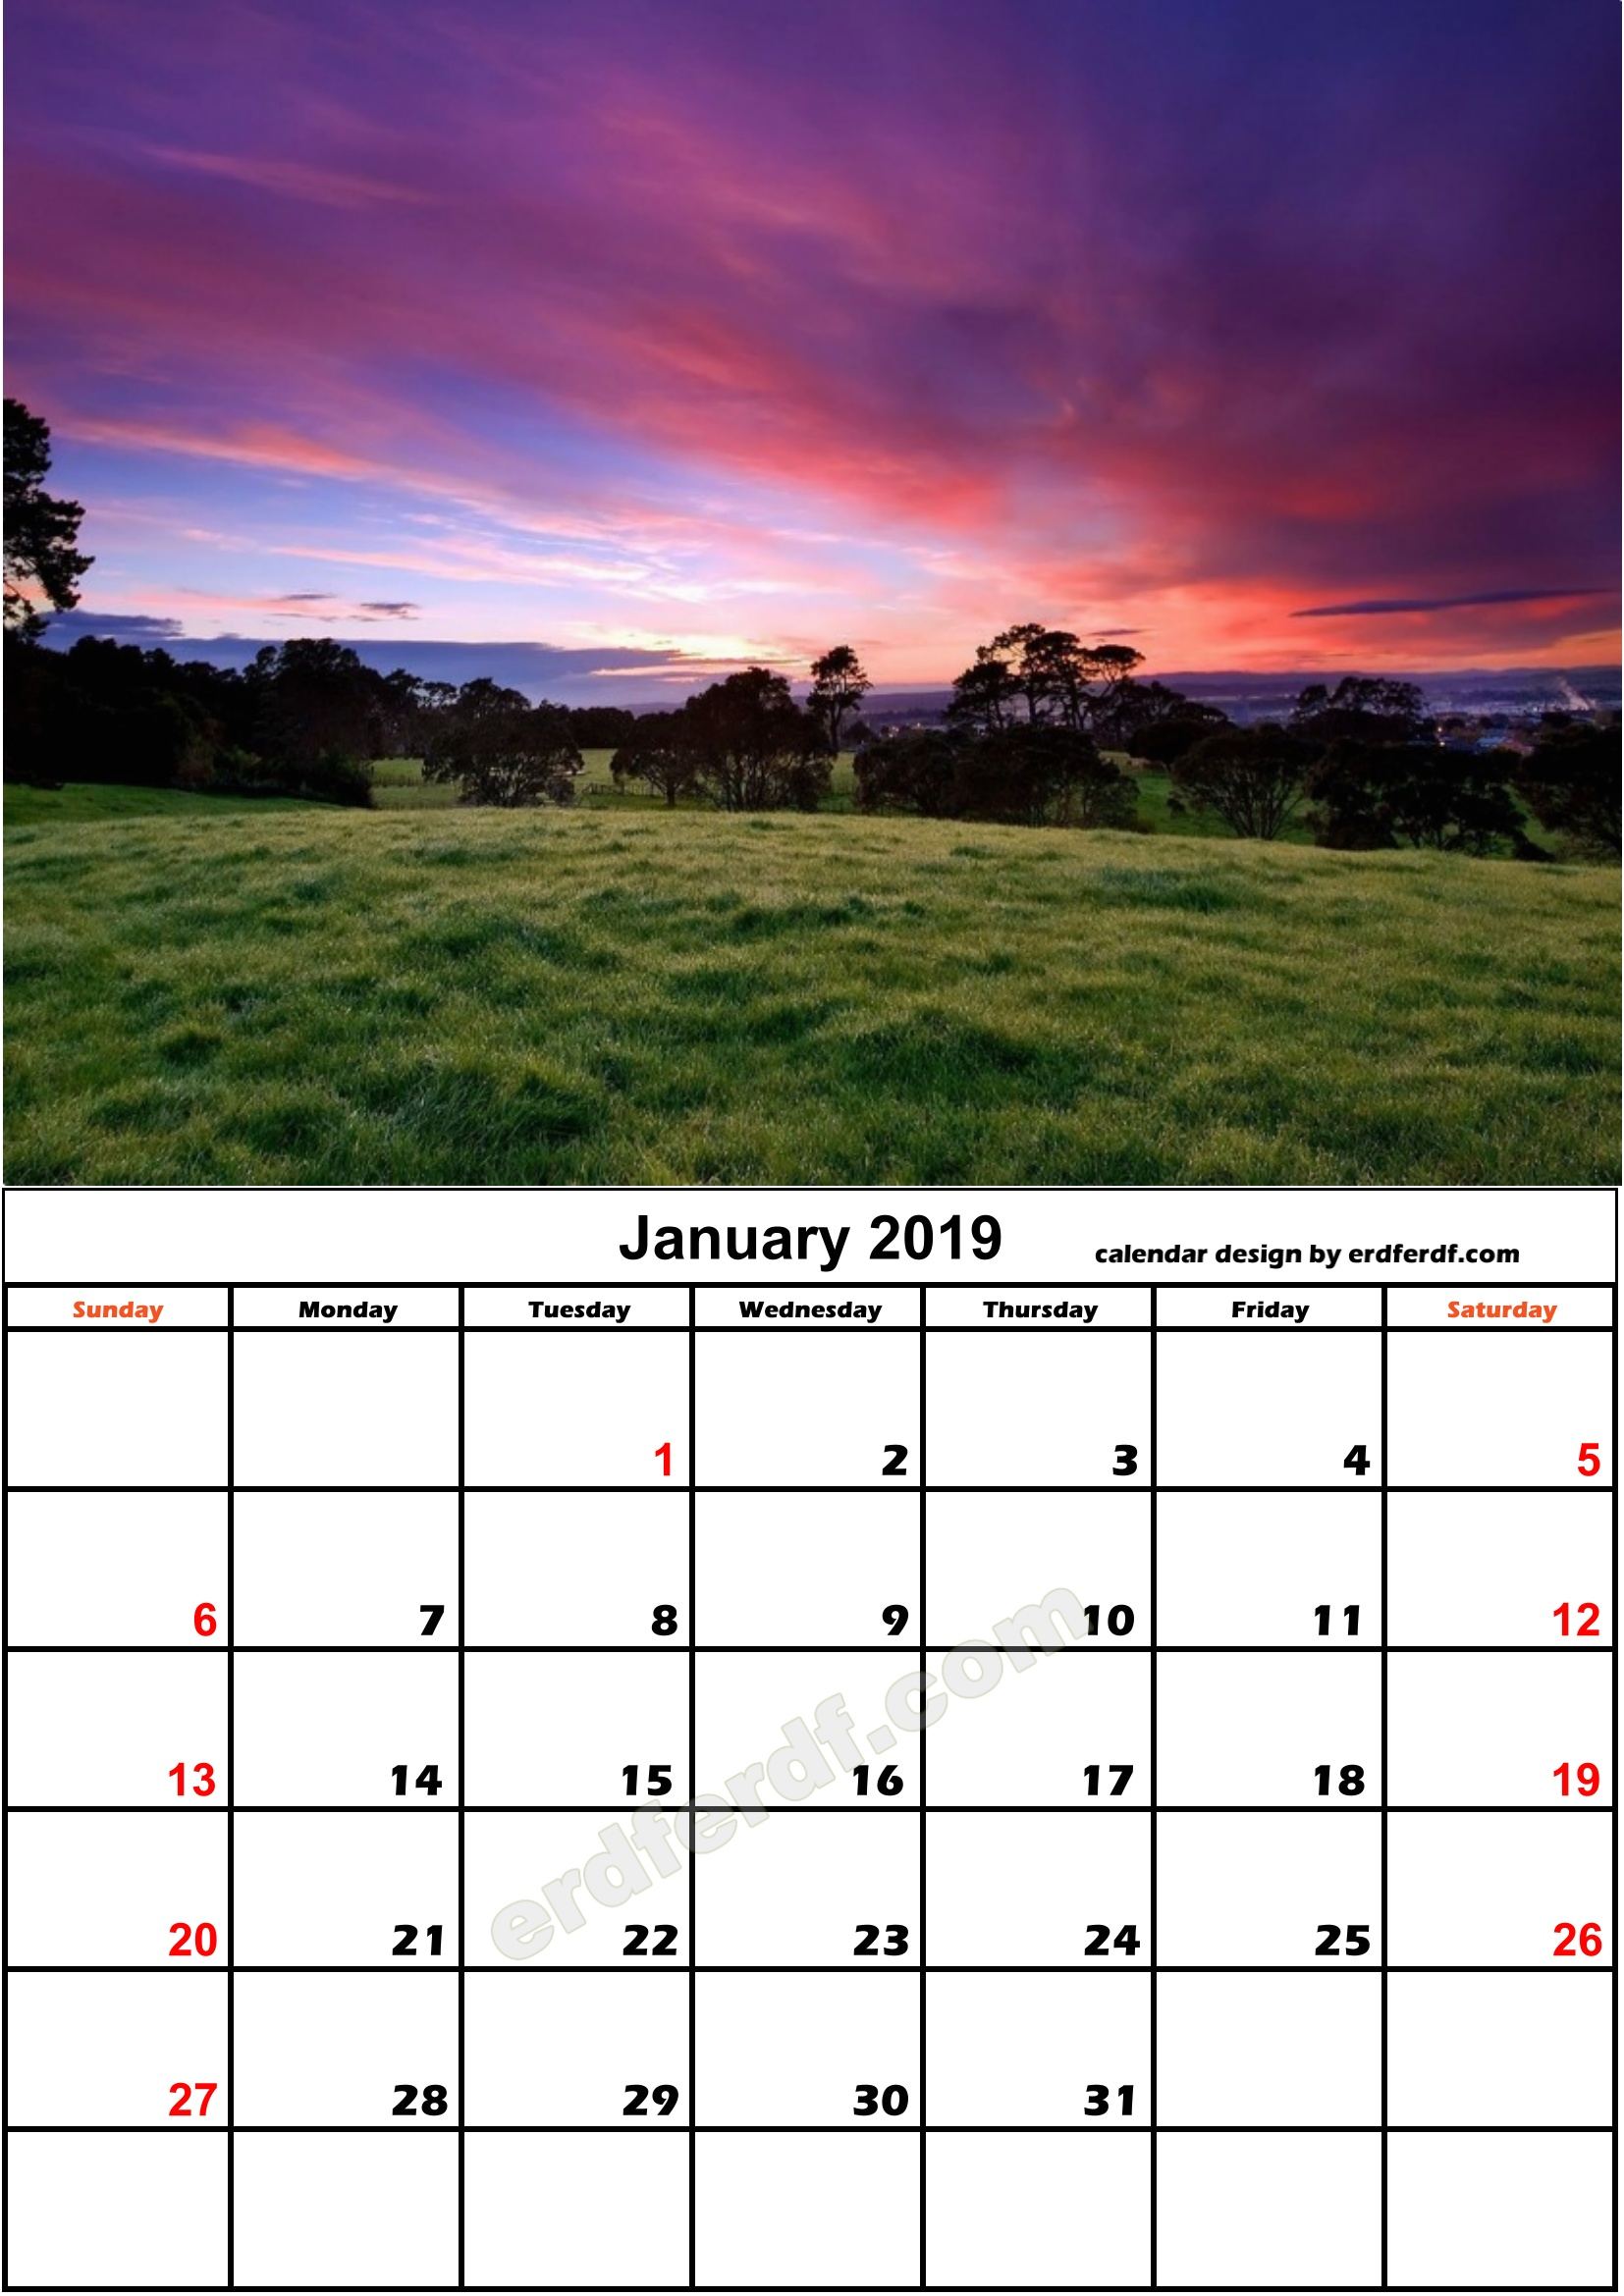 1 January Nature Calendar Monthly 2019 Free Download